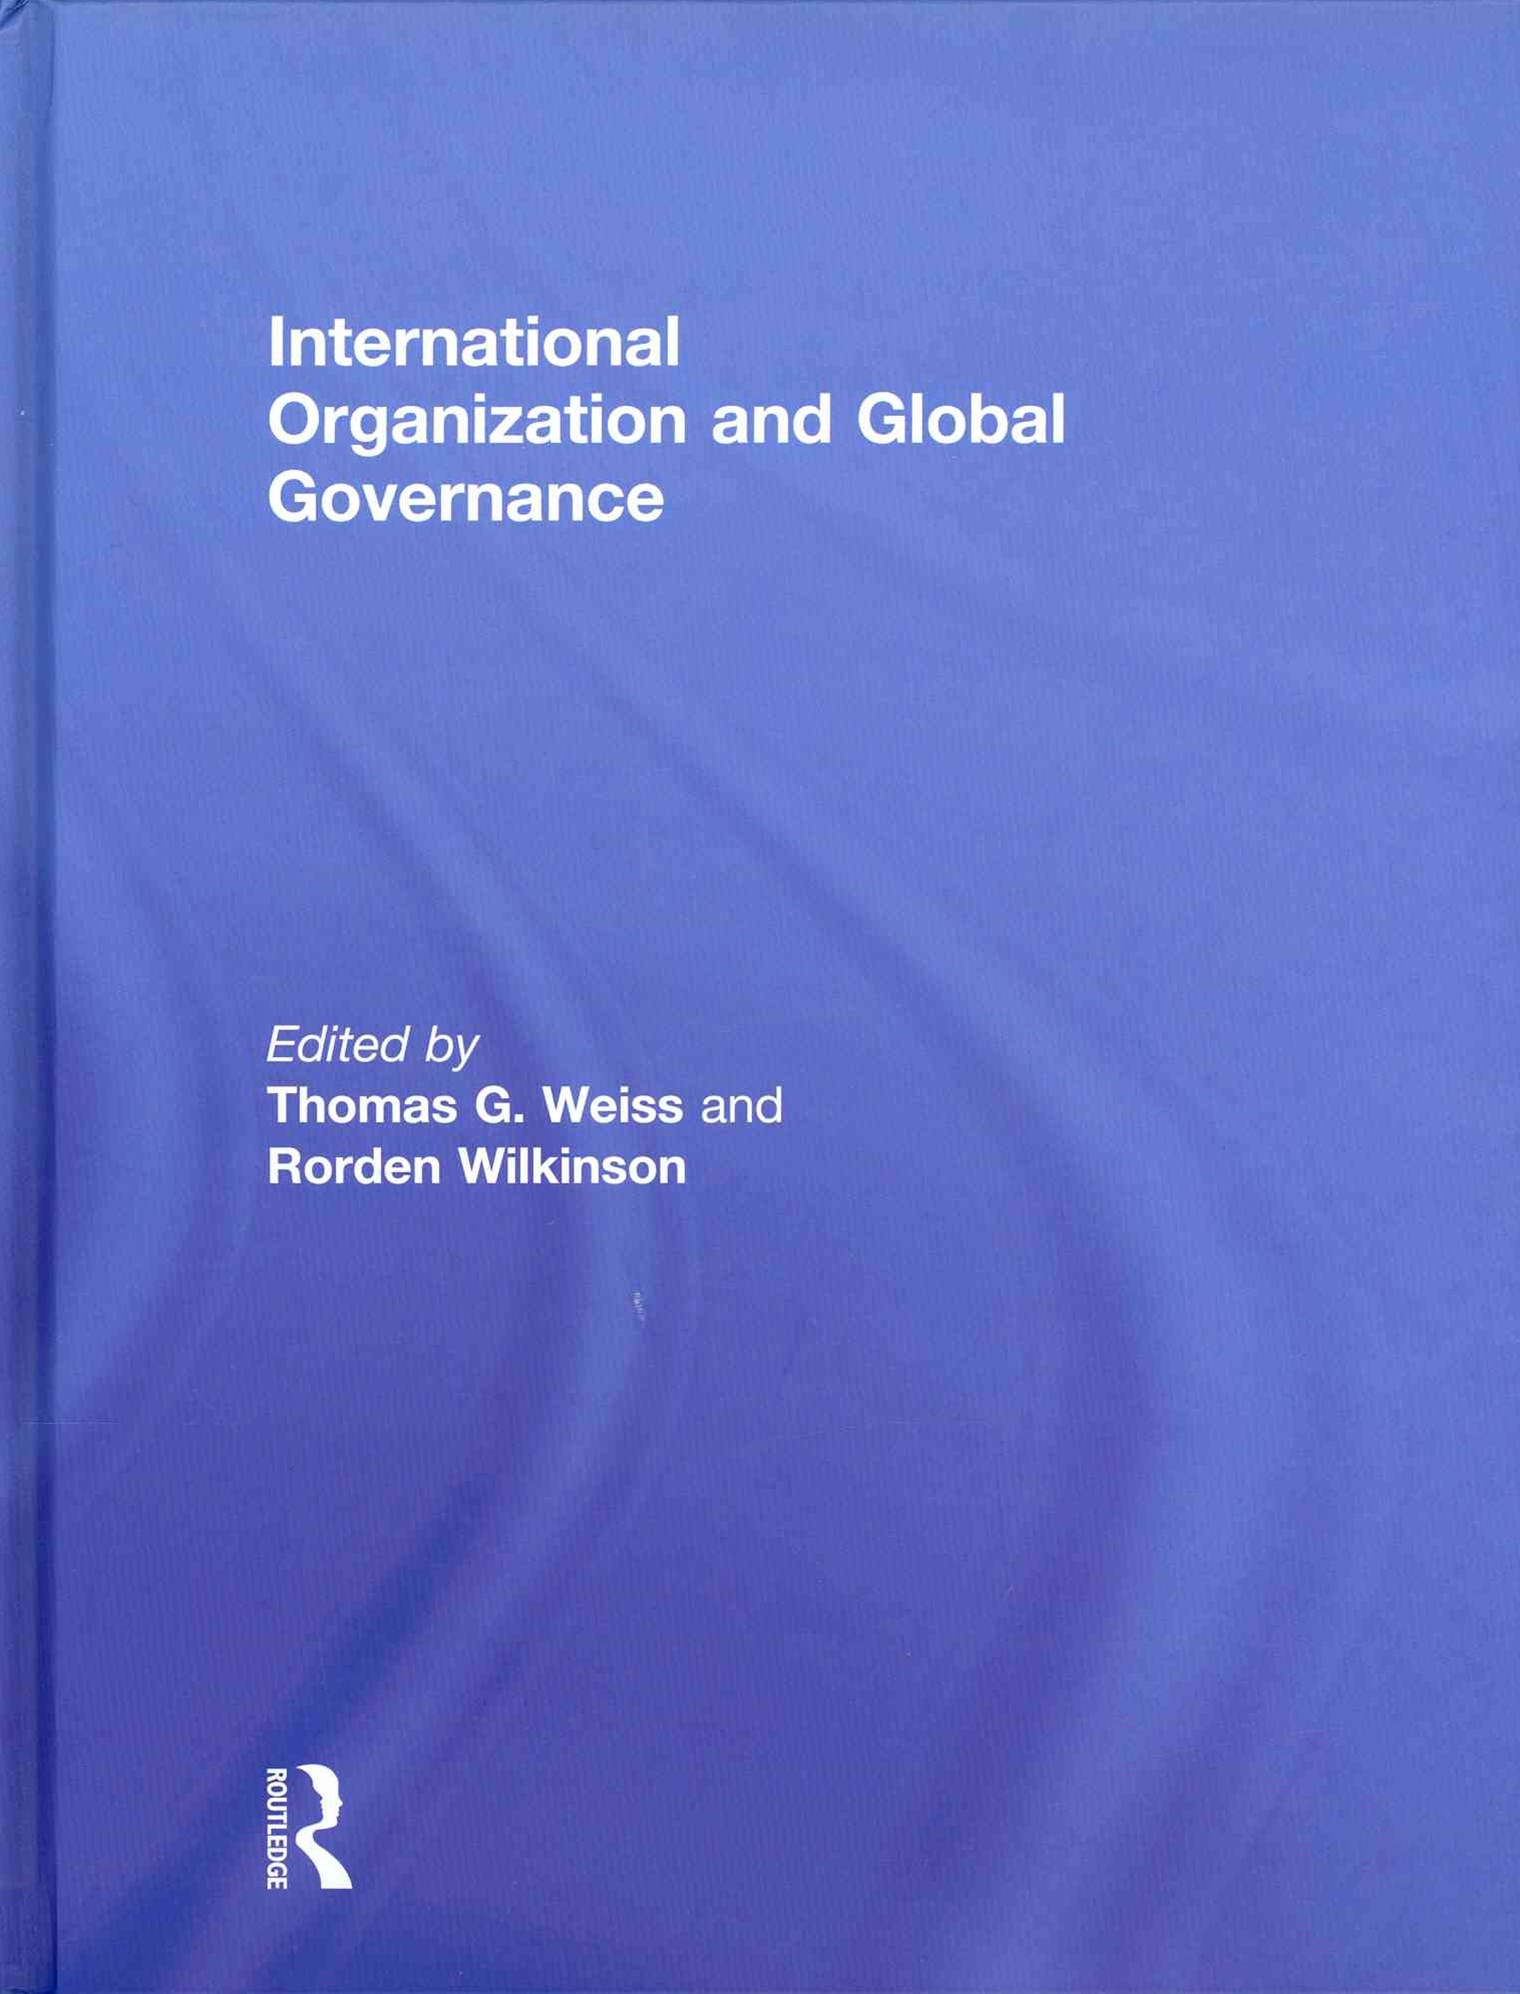 International Organizations and Global Governance